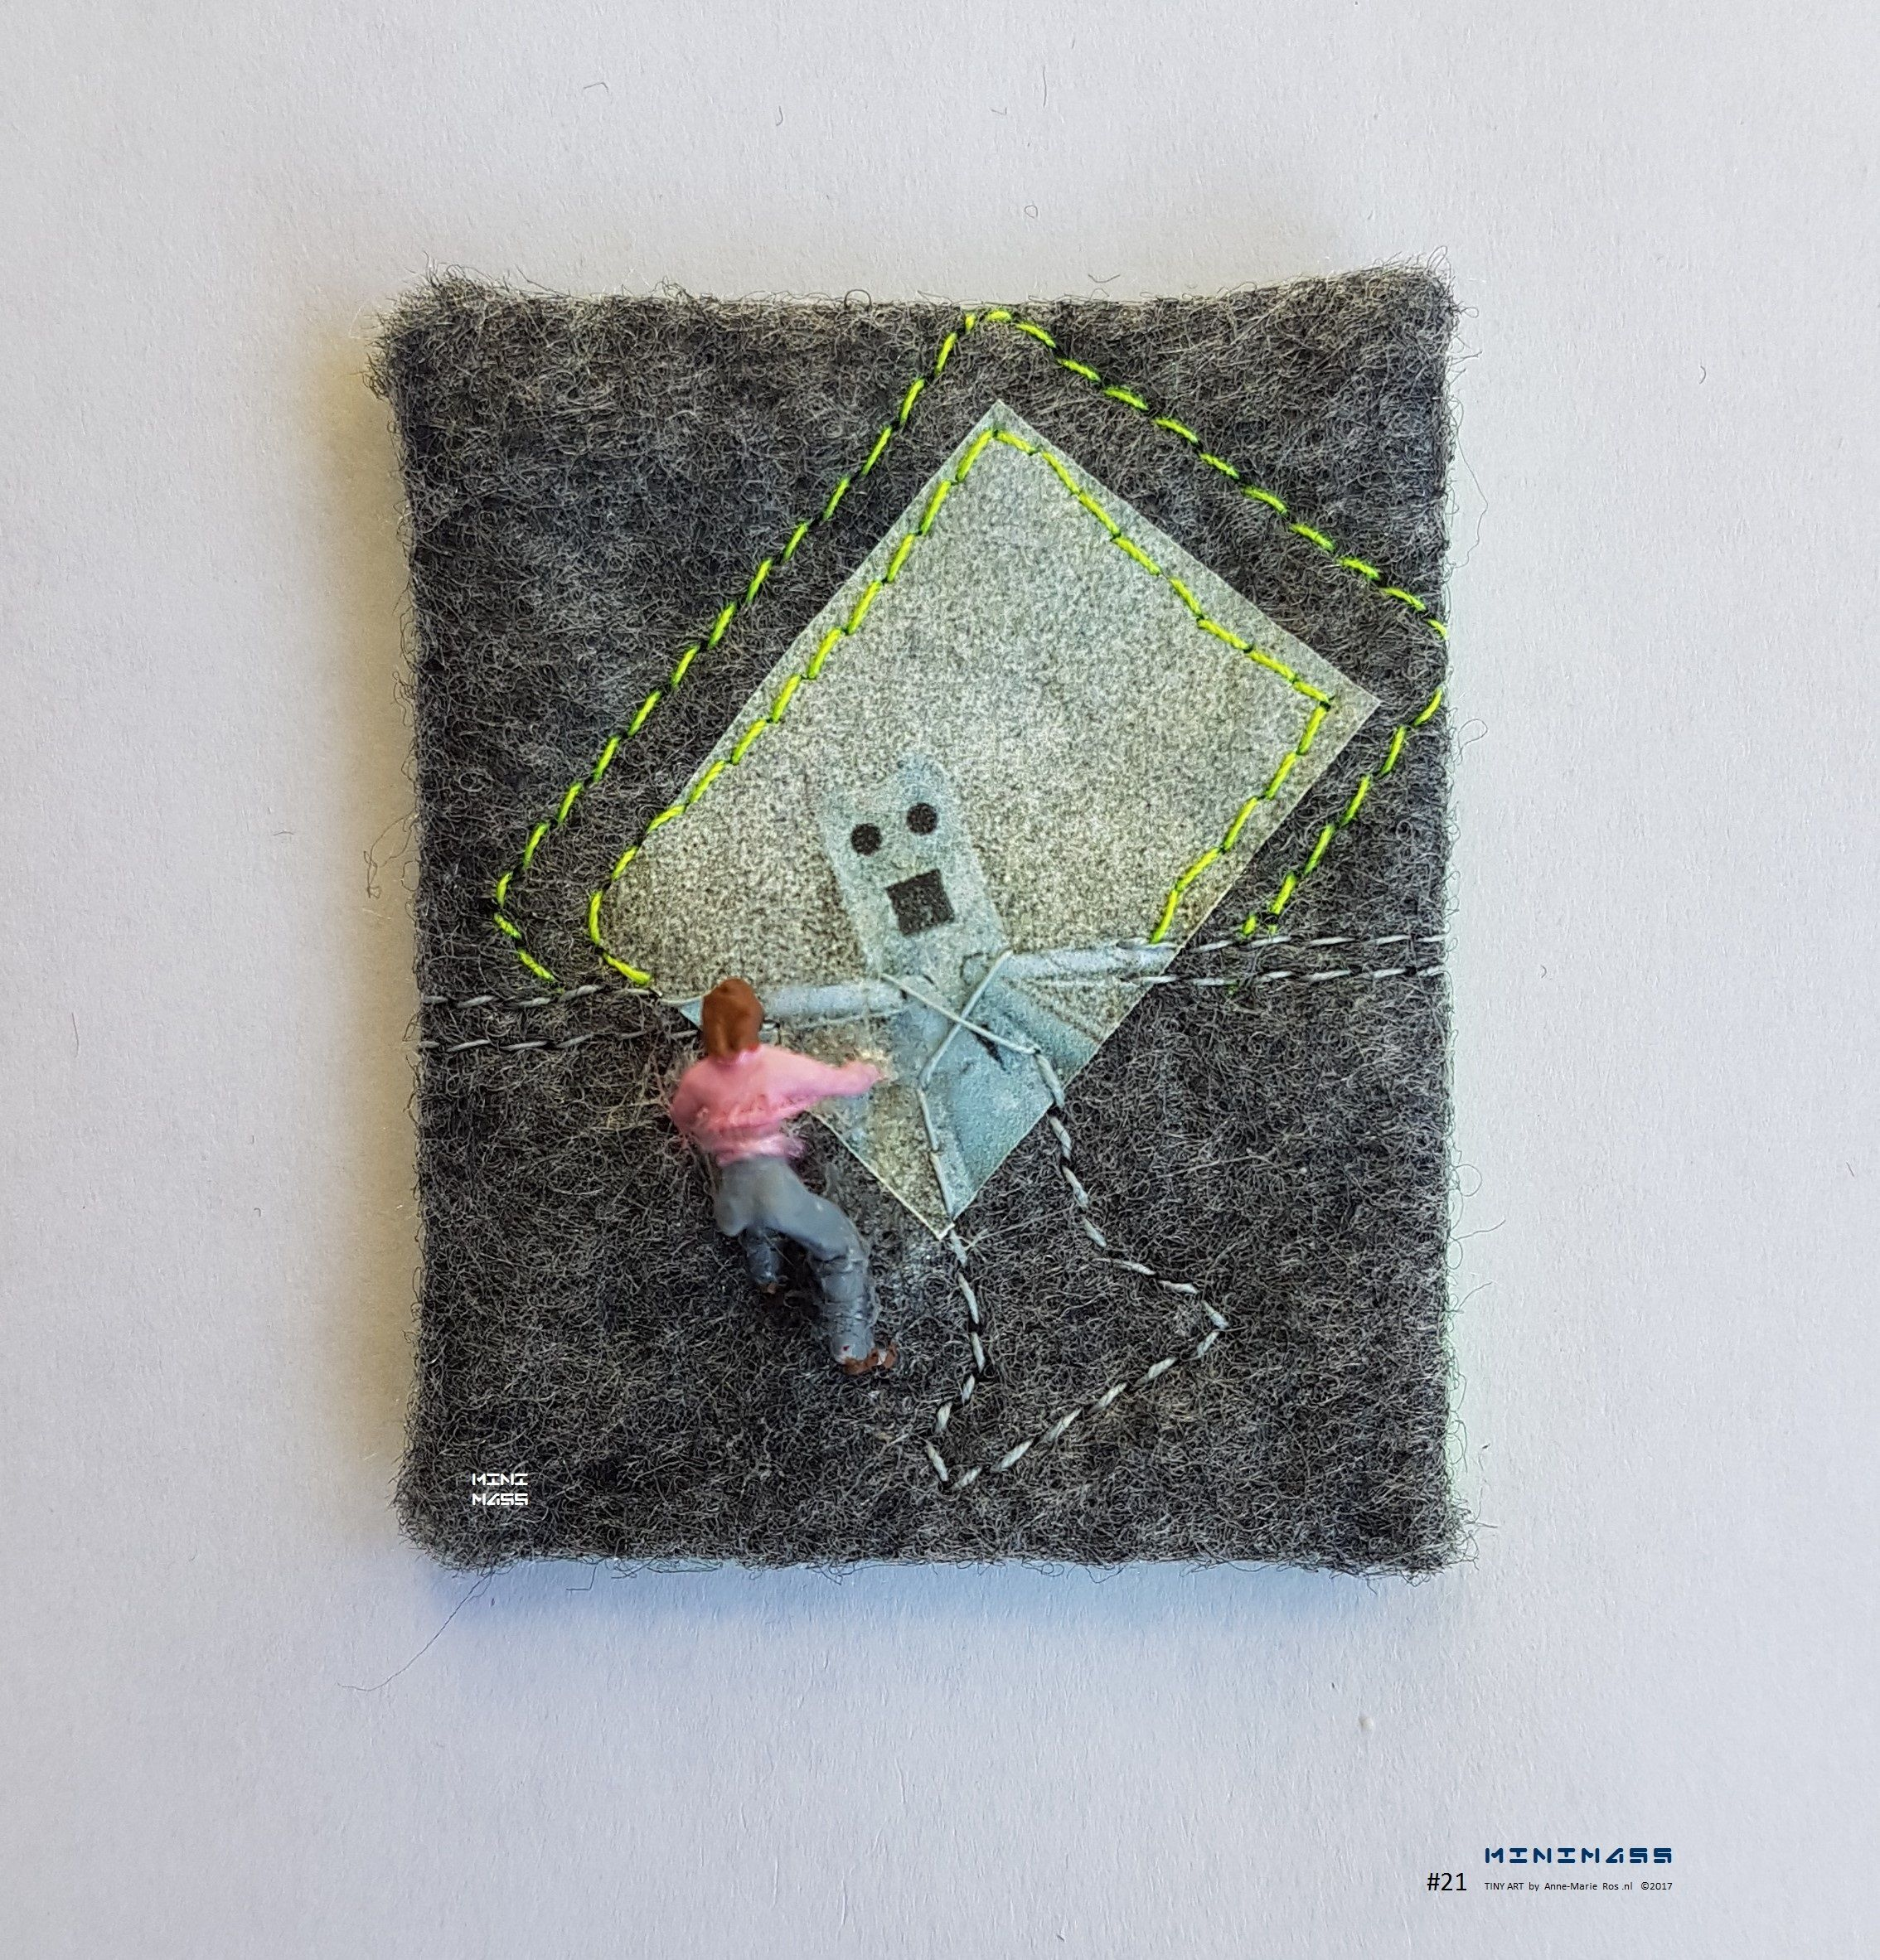 Climb into my arms. I See Faces Everywhere. minimass® TINY ART by Anne-Marie Ros .nl #21 is available - makes a great gift or just spoil yourself ;)